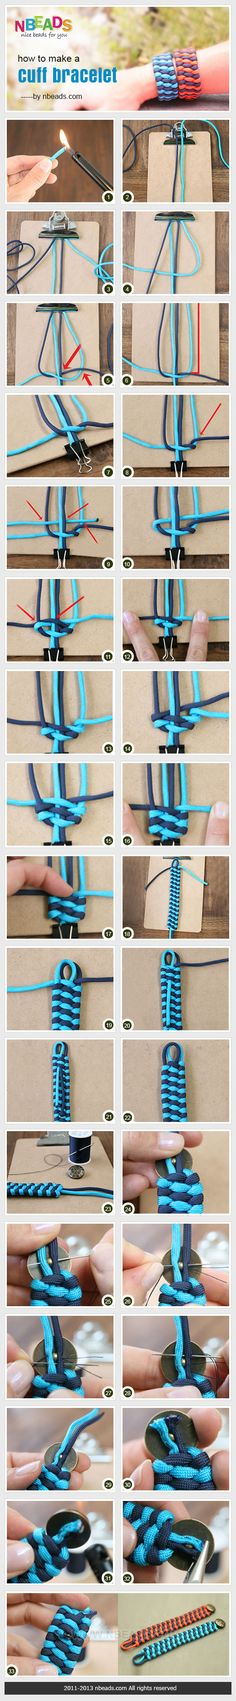 Paracord bracelet steps.  Our kids would love this summer fun activity! (How To Make Bracelets Ideas)